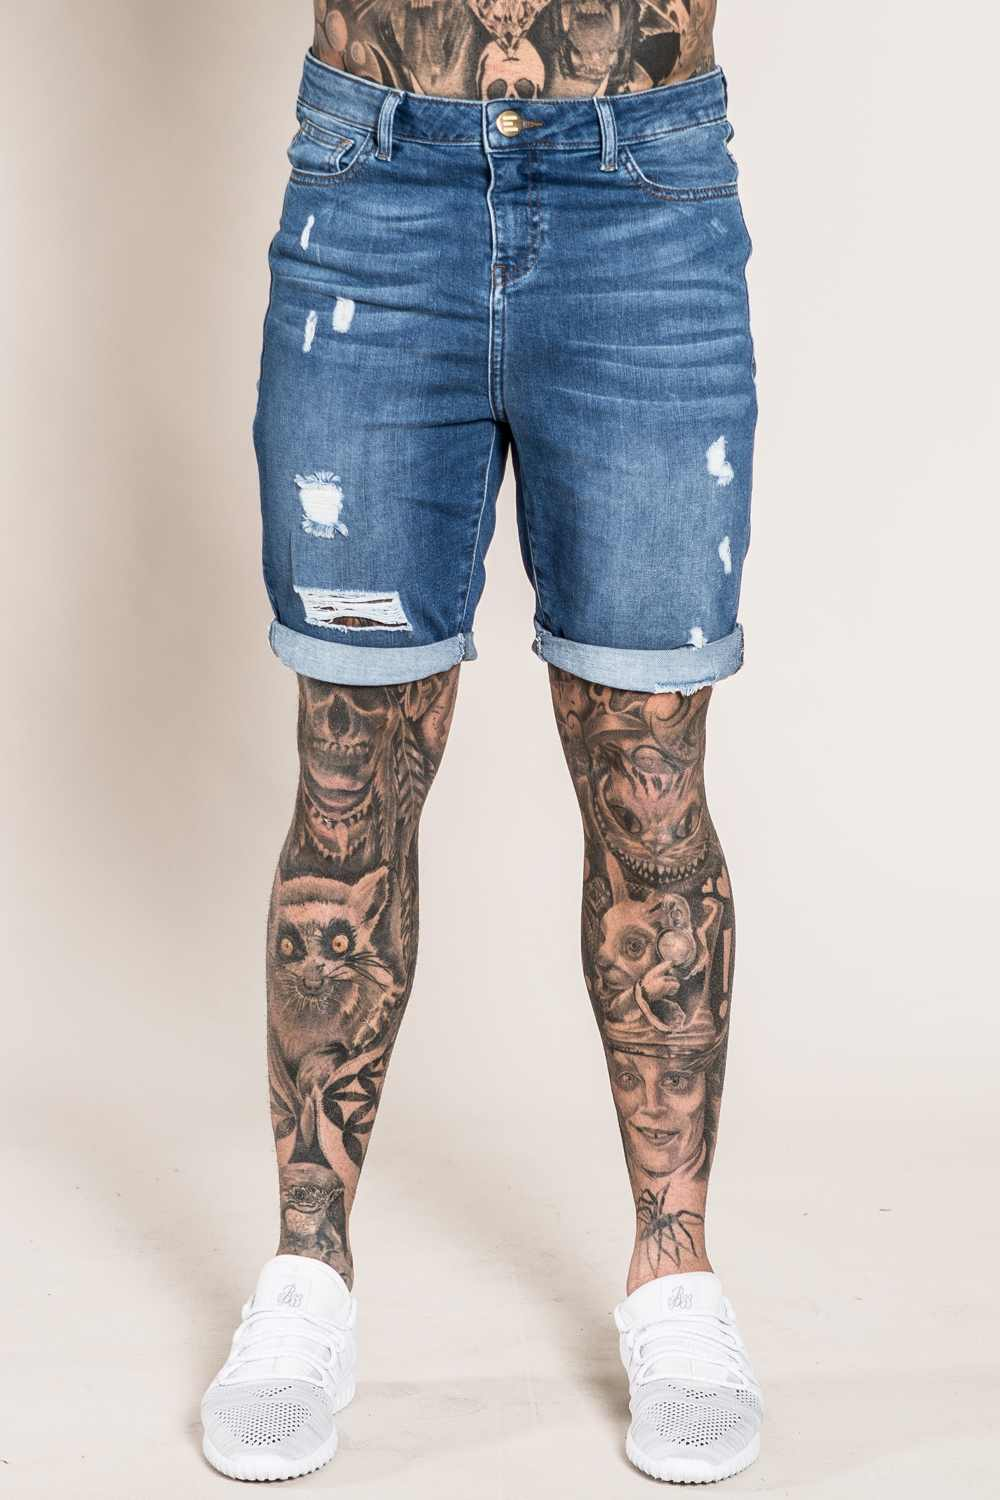 Emulate Marquee Mens Ripped Denim Shorts - Dark Wash